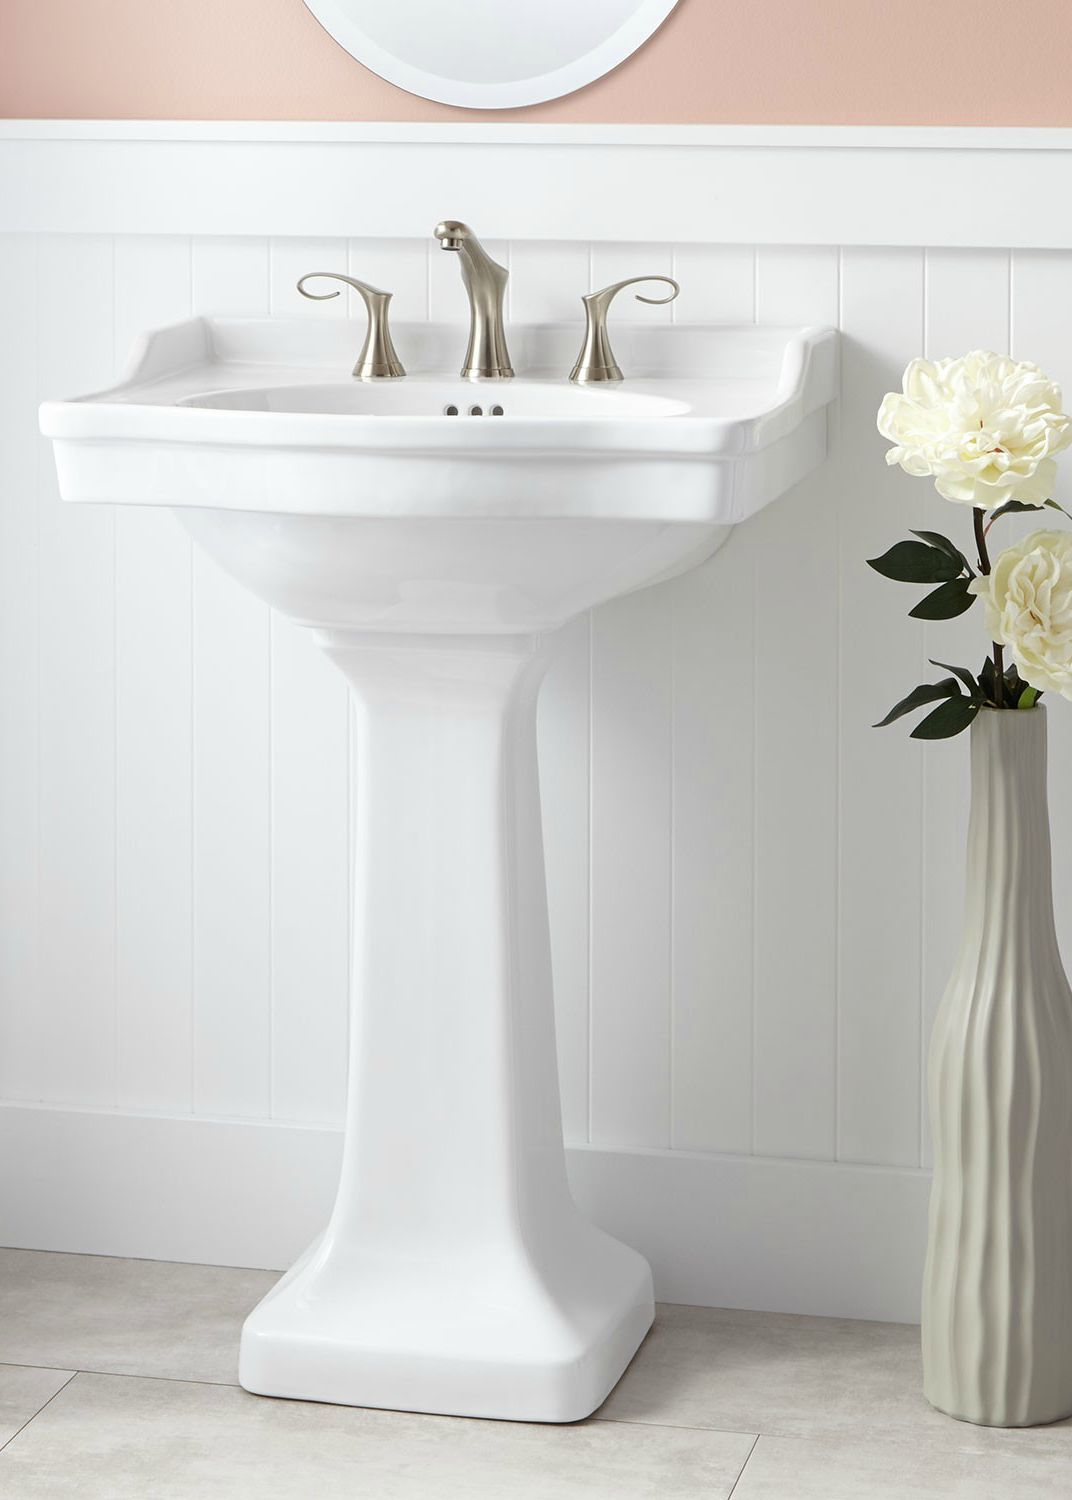 This Beautiful Pedestal Sink Will Complete Your Renovated